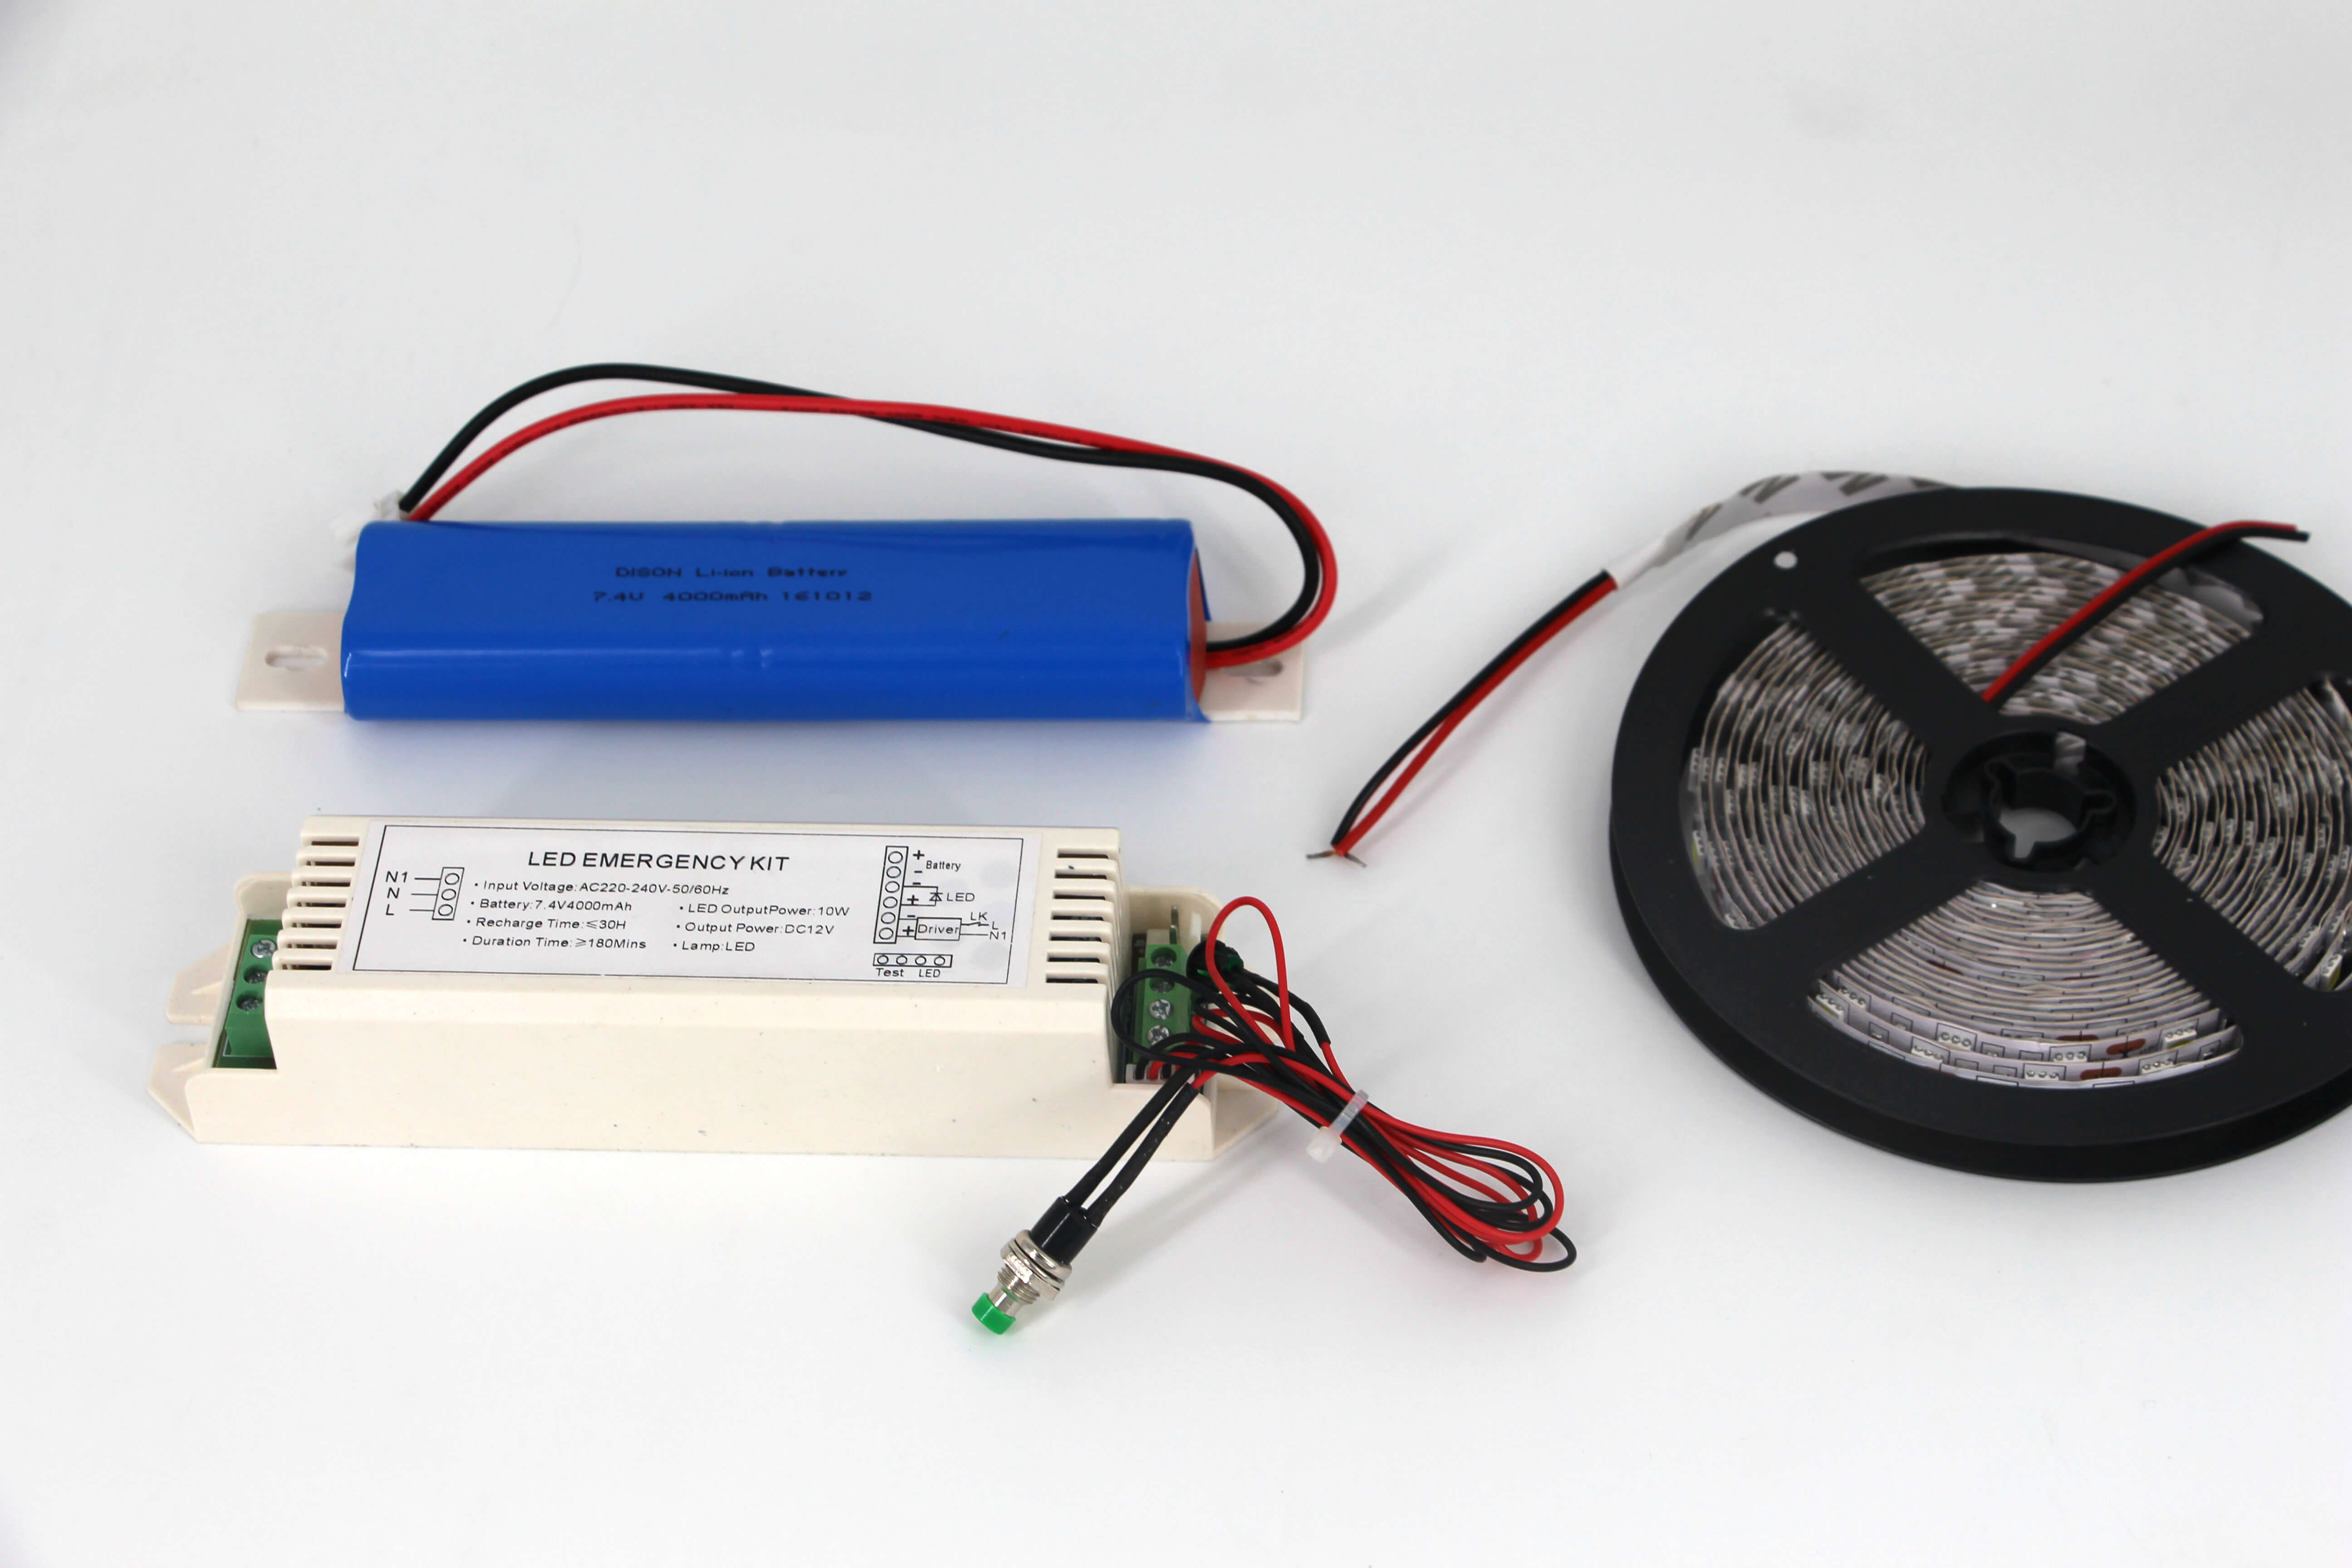 DC 12V linear lighting Emergency Power supply LED